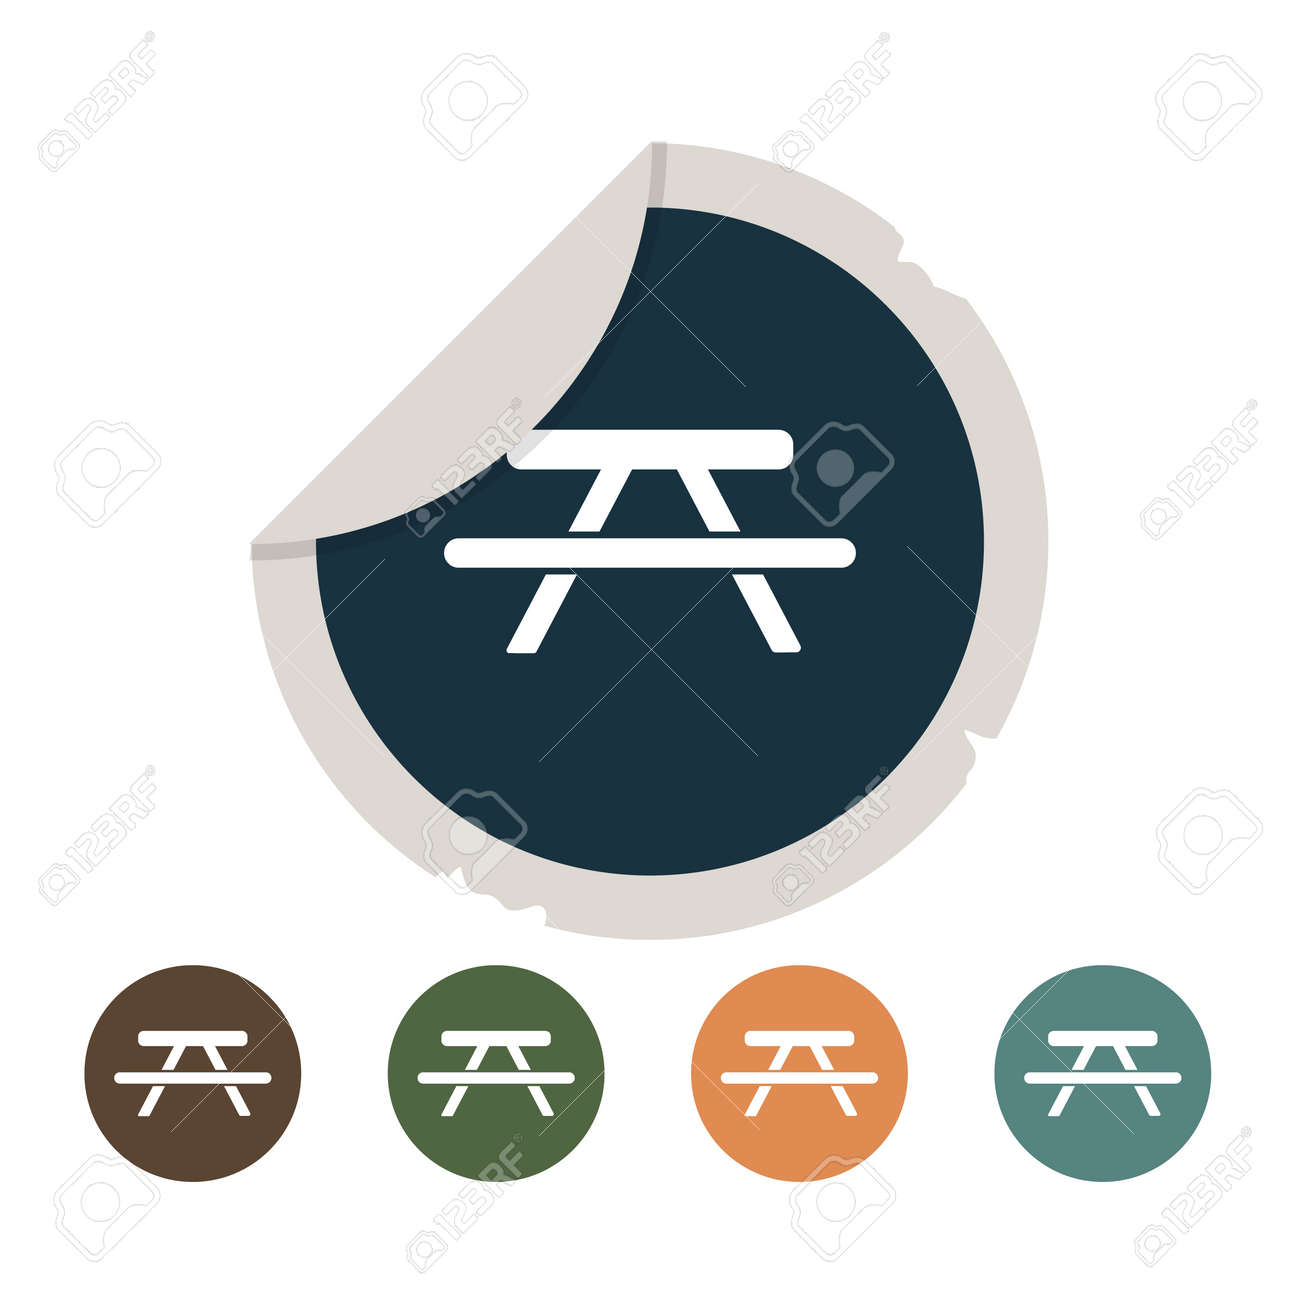 Picnic table icon royalty free cliparts vectors and stock picnic table icon stock vector 50343238 biocorpaavc